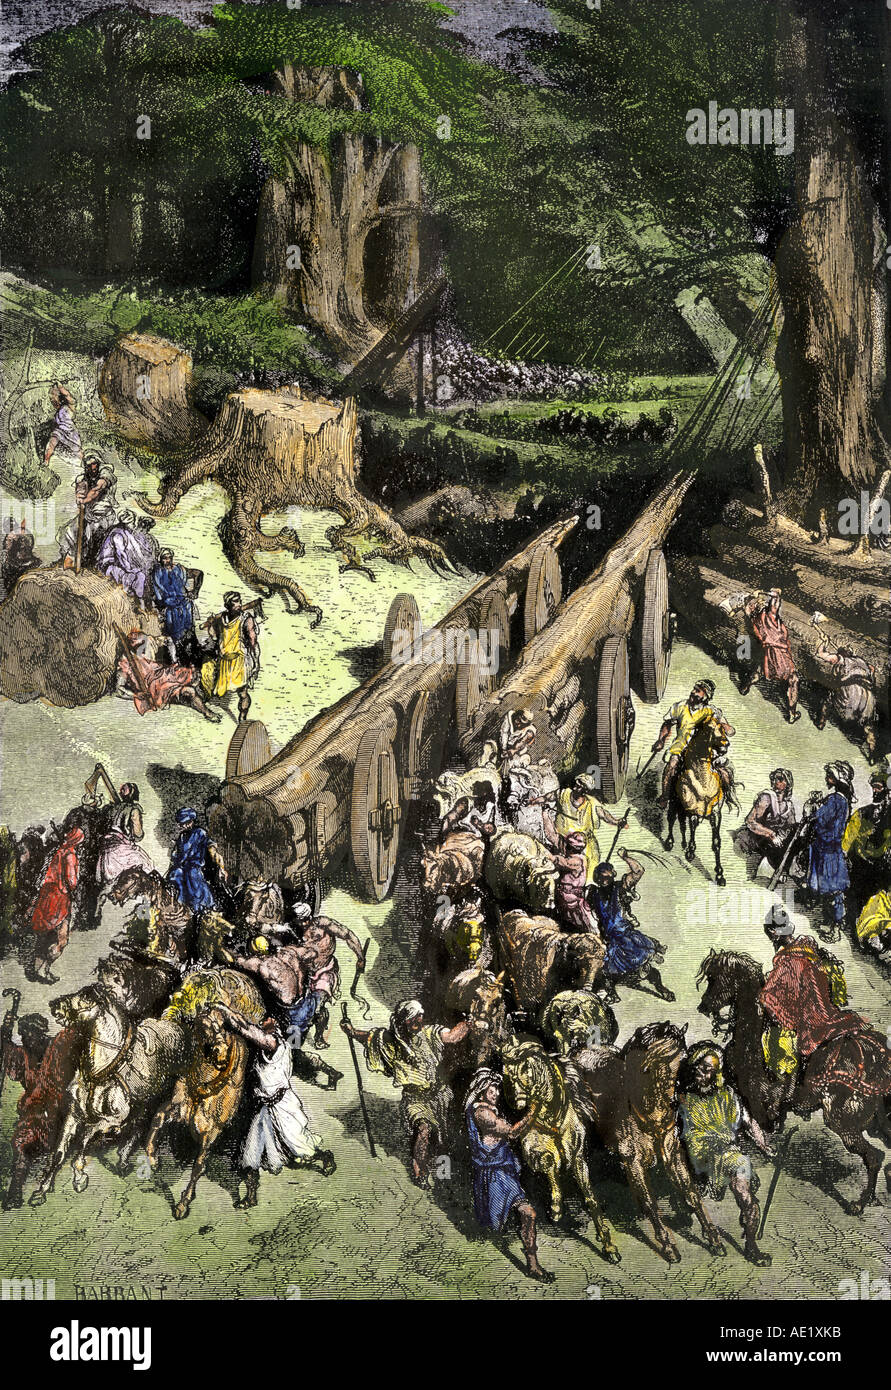 King Hiram of Tyre brings men to help the Israelites cut cedar trees to rebuild the temple of Solomon in Jersalem. Hand-colored woodcut - Stock Image